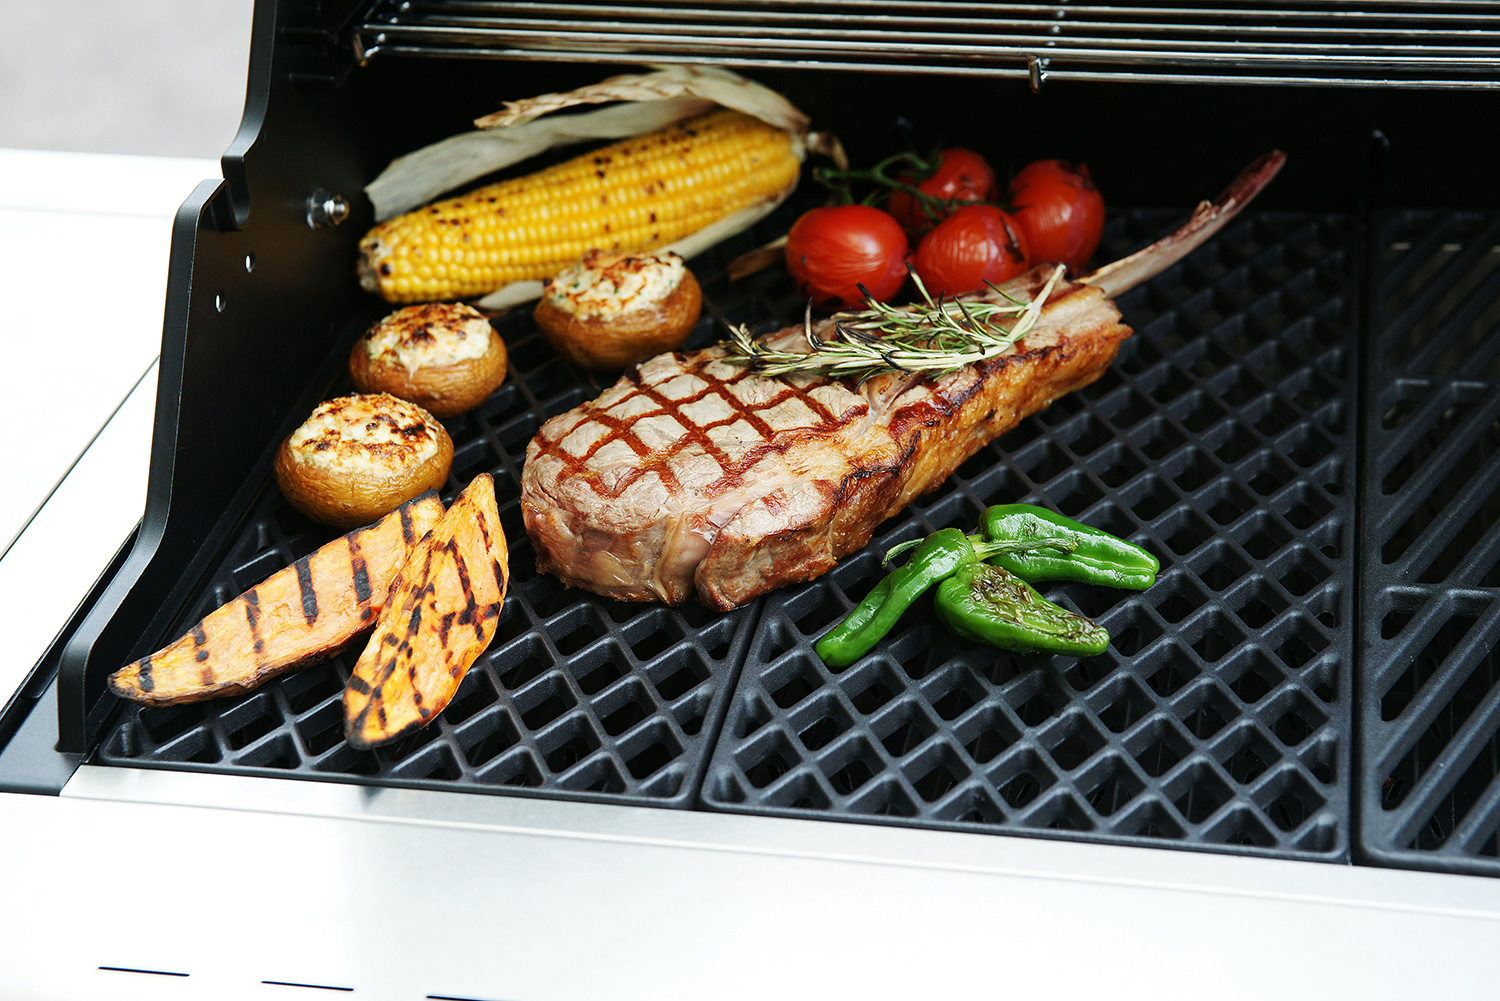 Weber Holzkohlegrill Mit Gussrost : Gussrost oldmountainbbq